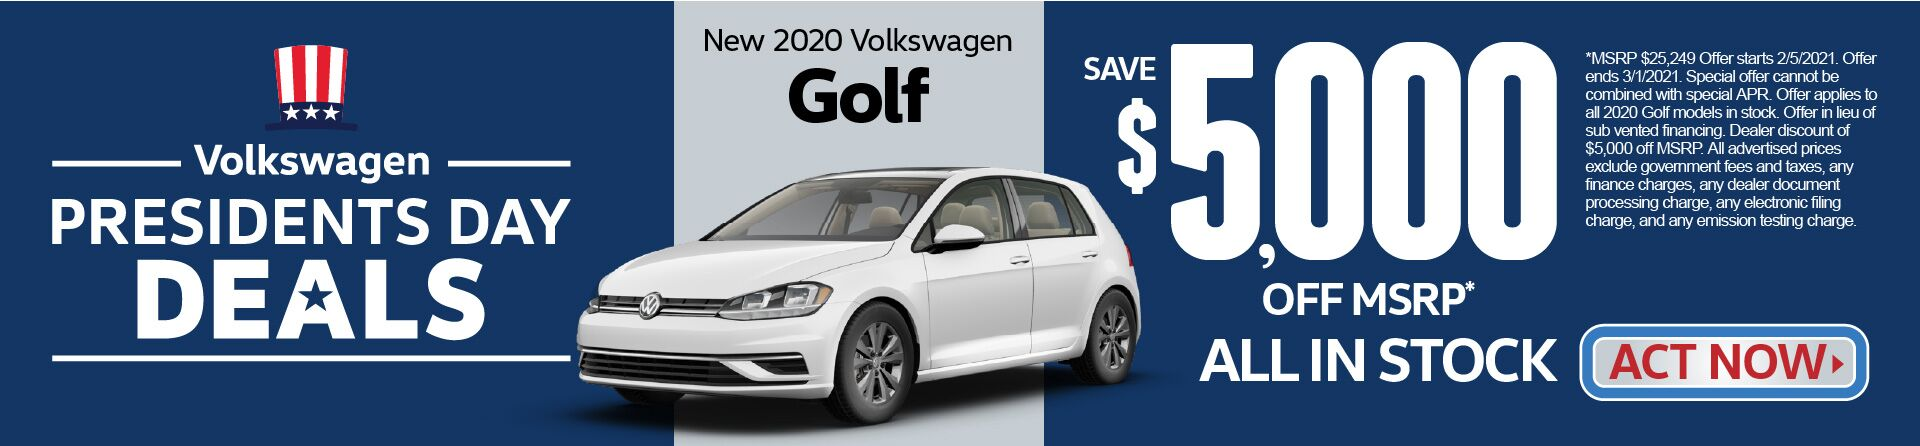 New 2020 VW Golf Save $5,000 off MSRP | Act Now